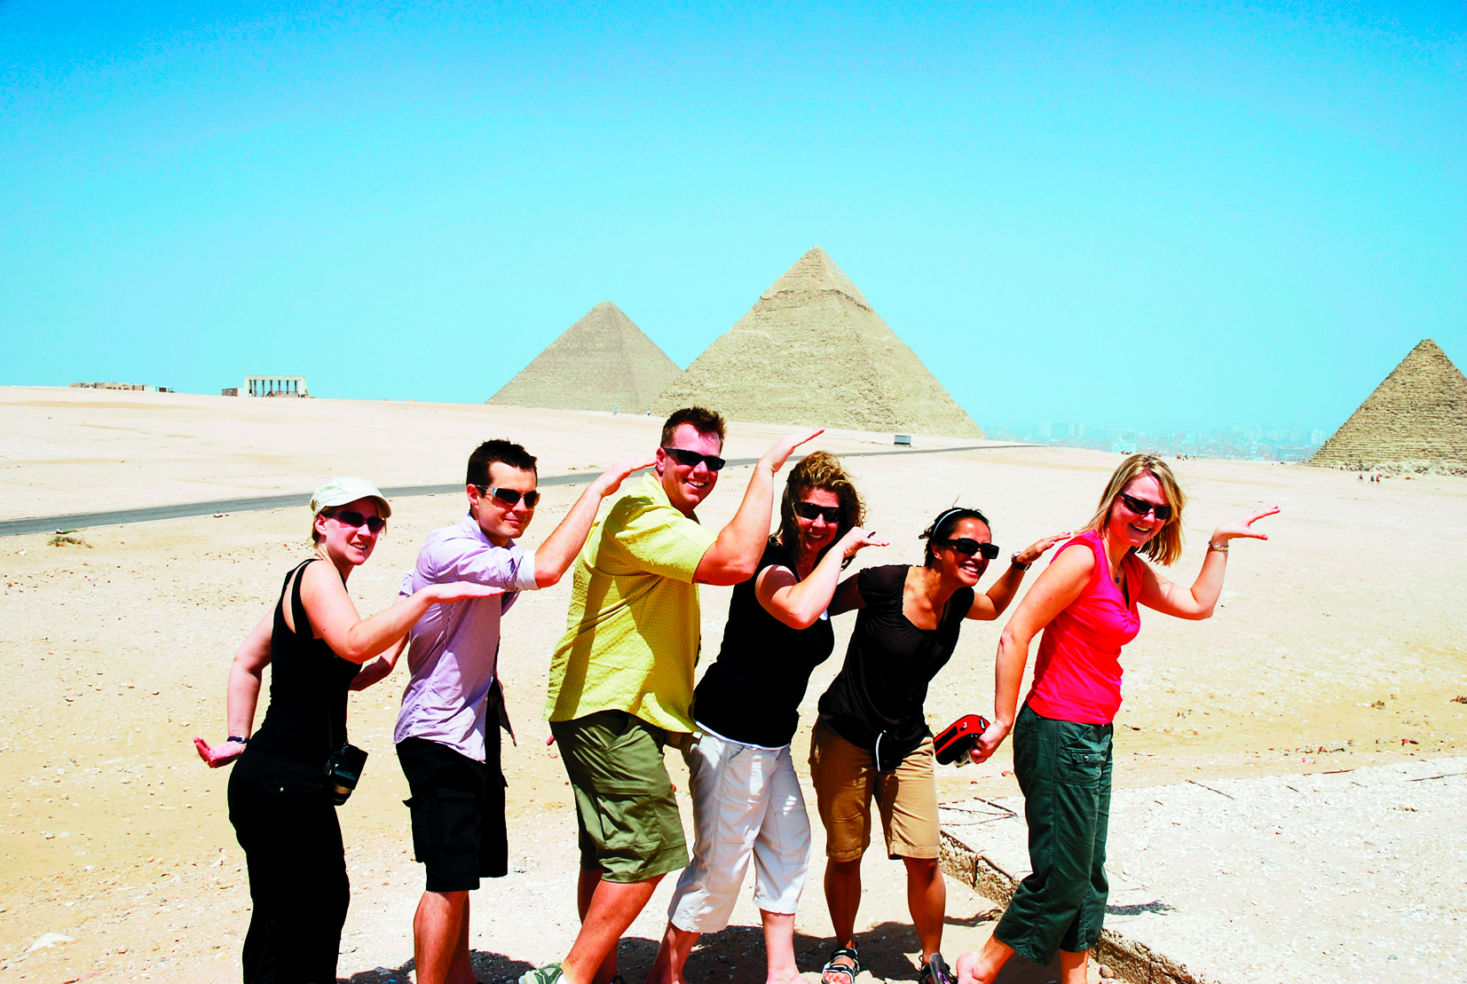 Pyramids group portrait